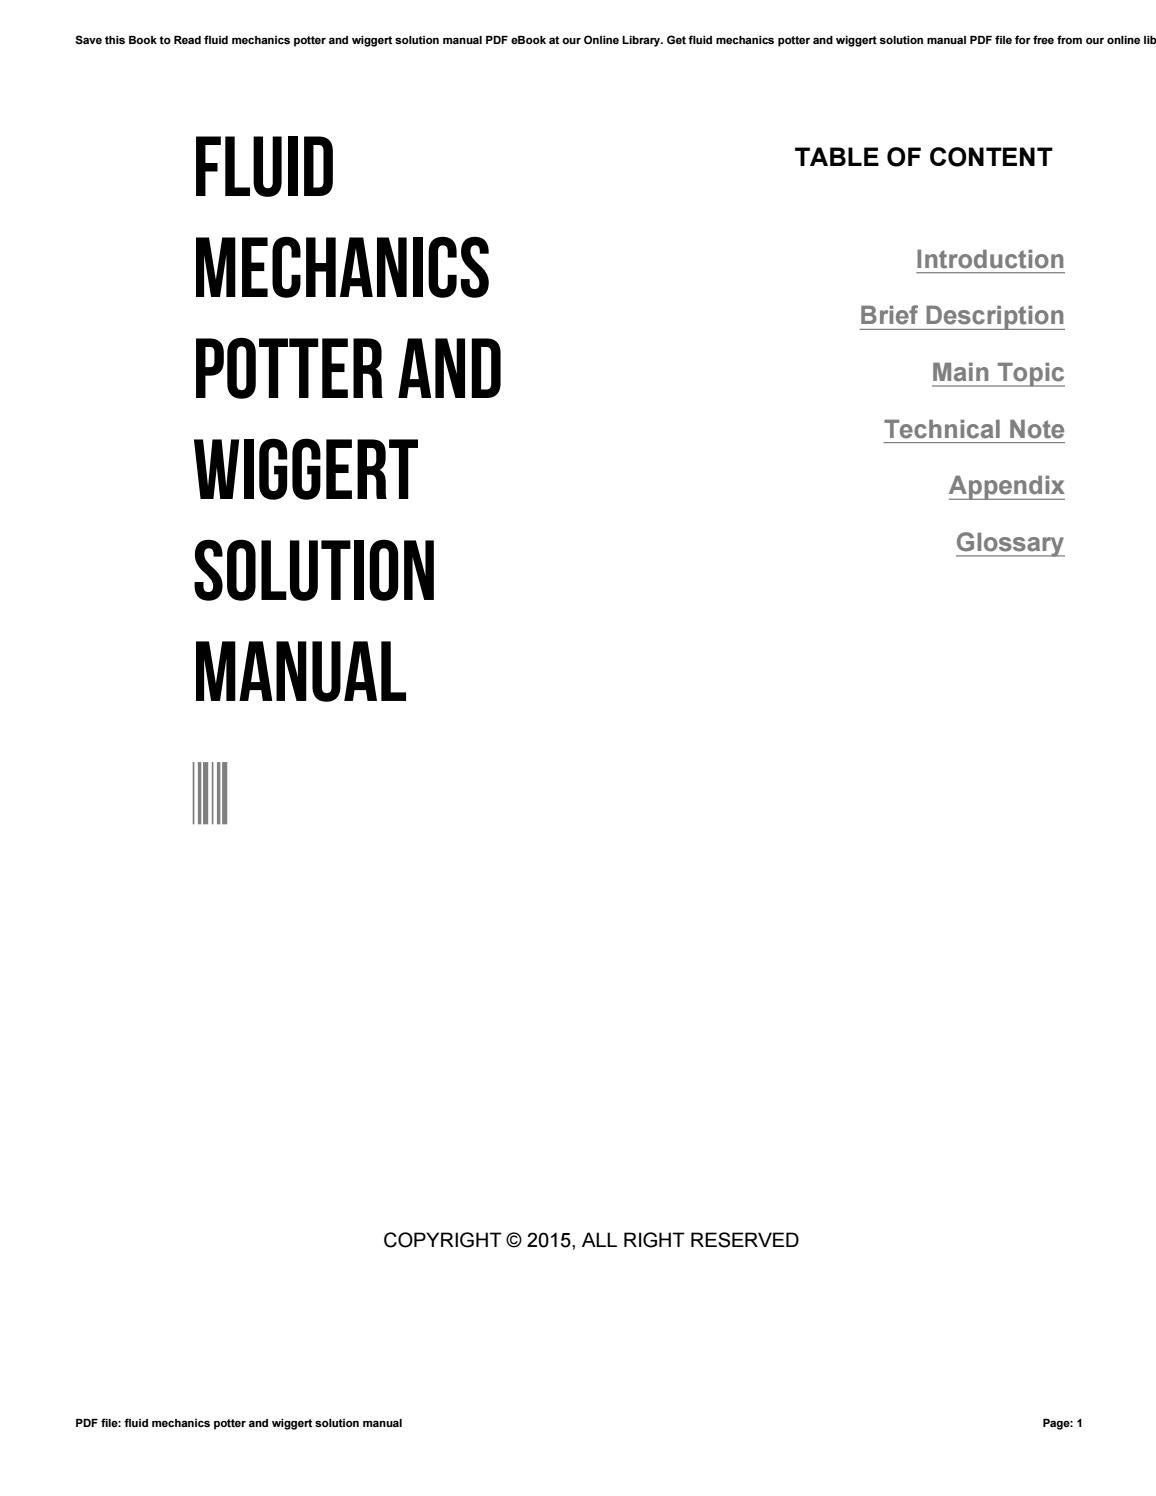 Fluid mechanics potter and wiggert solution manual by